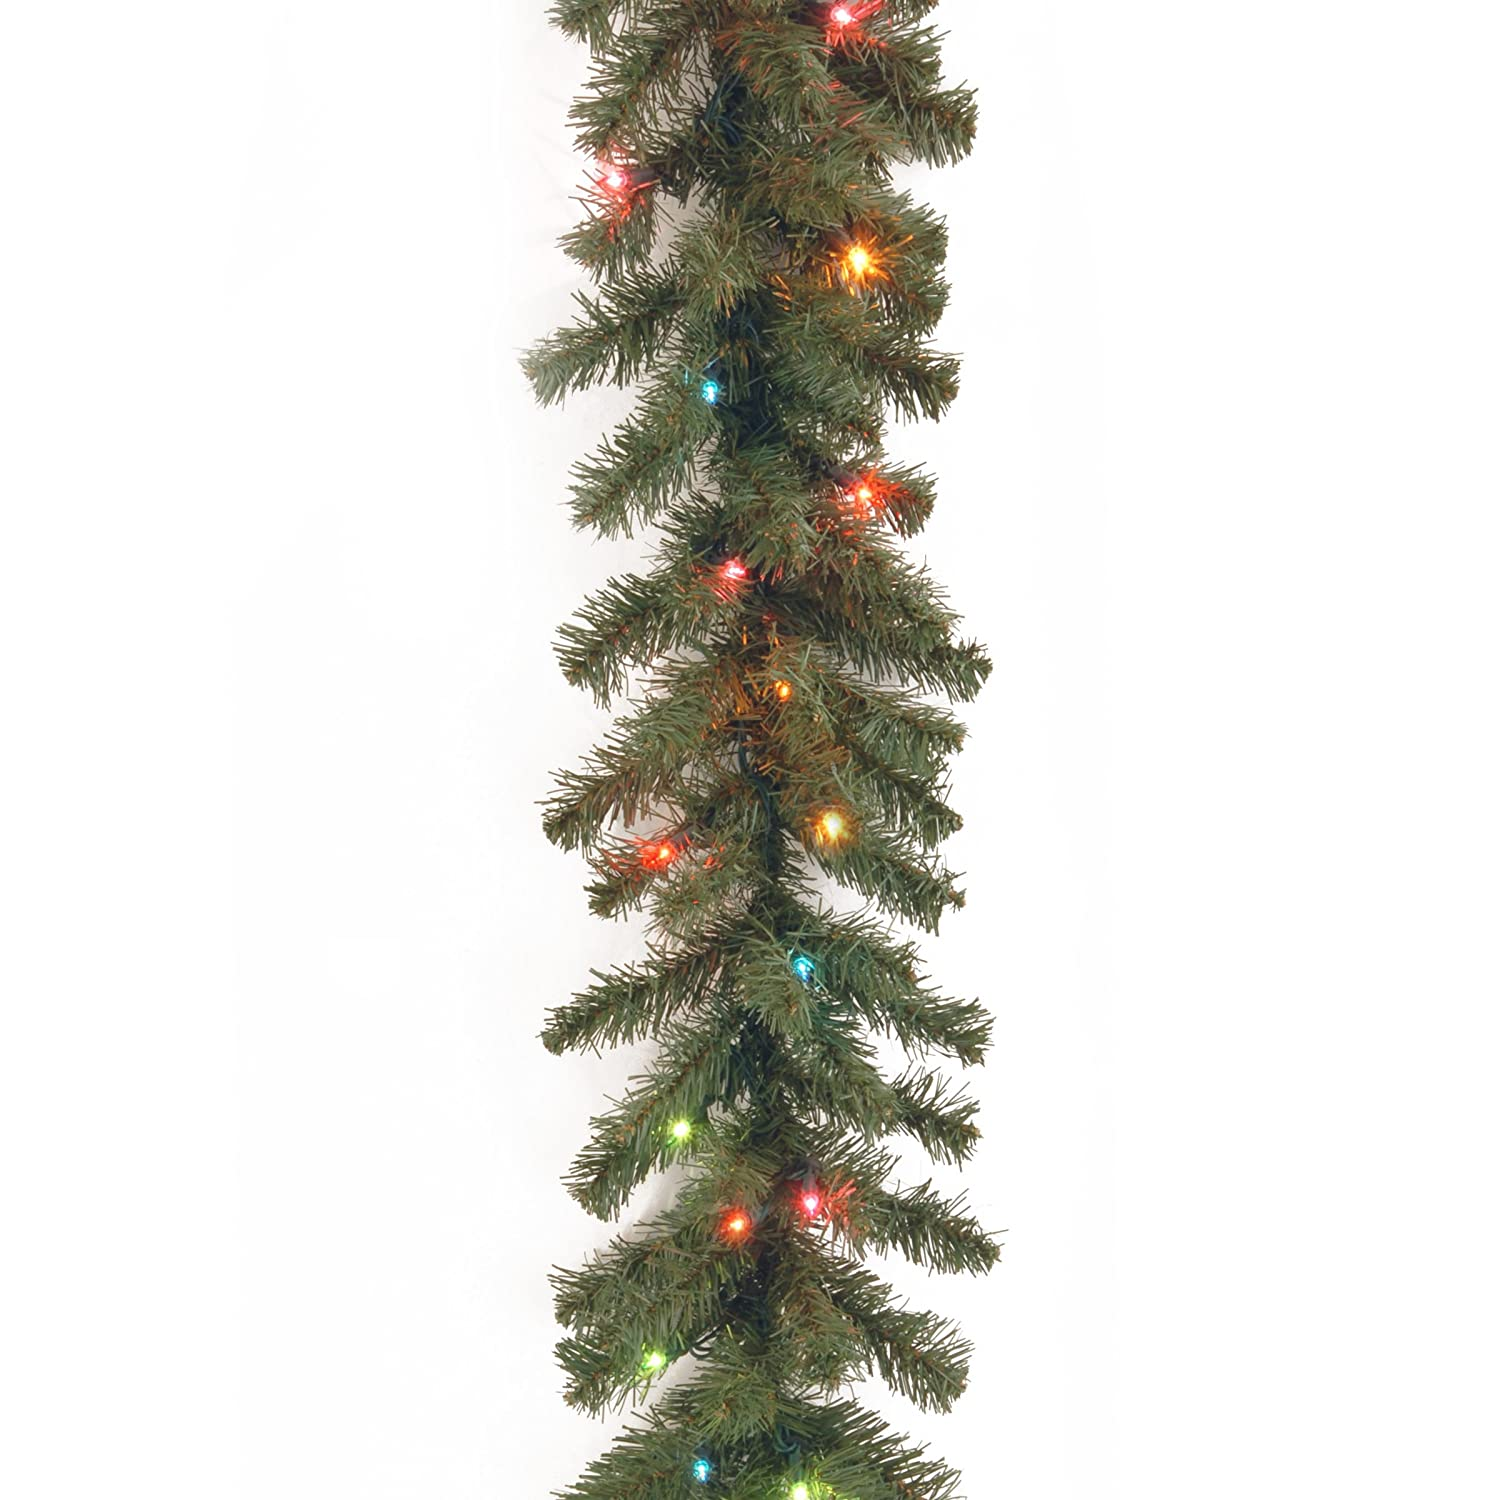 amazoncom national tree 9 foot by 10 inch kincaid spruce garland with 50 lights kcdr9brlo1 home u0026 kitchen